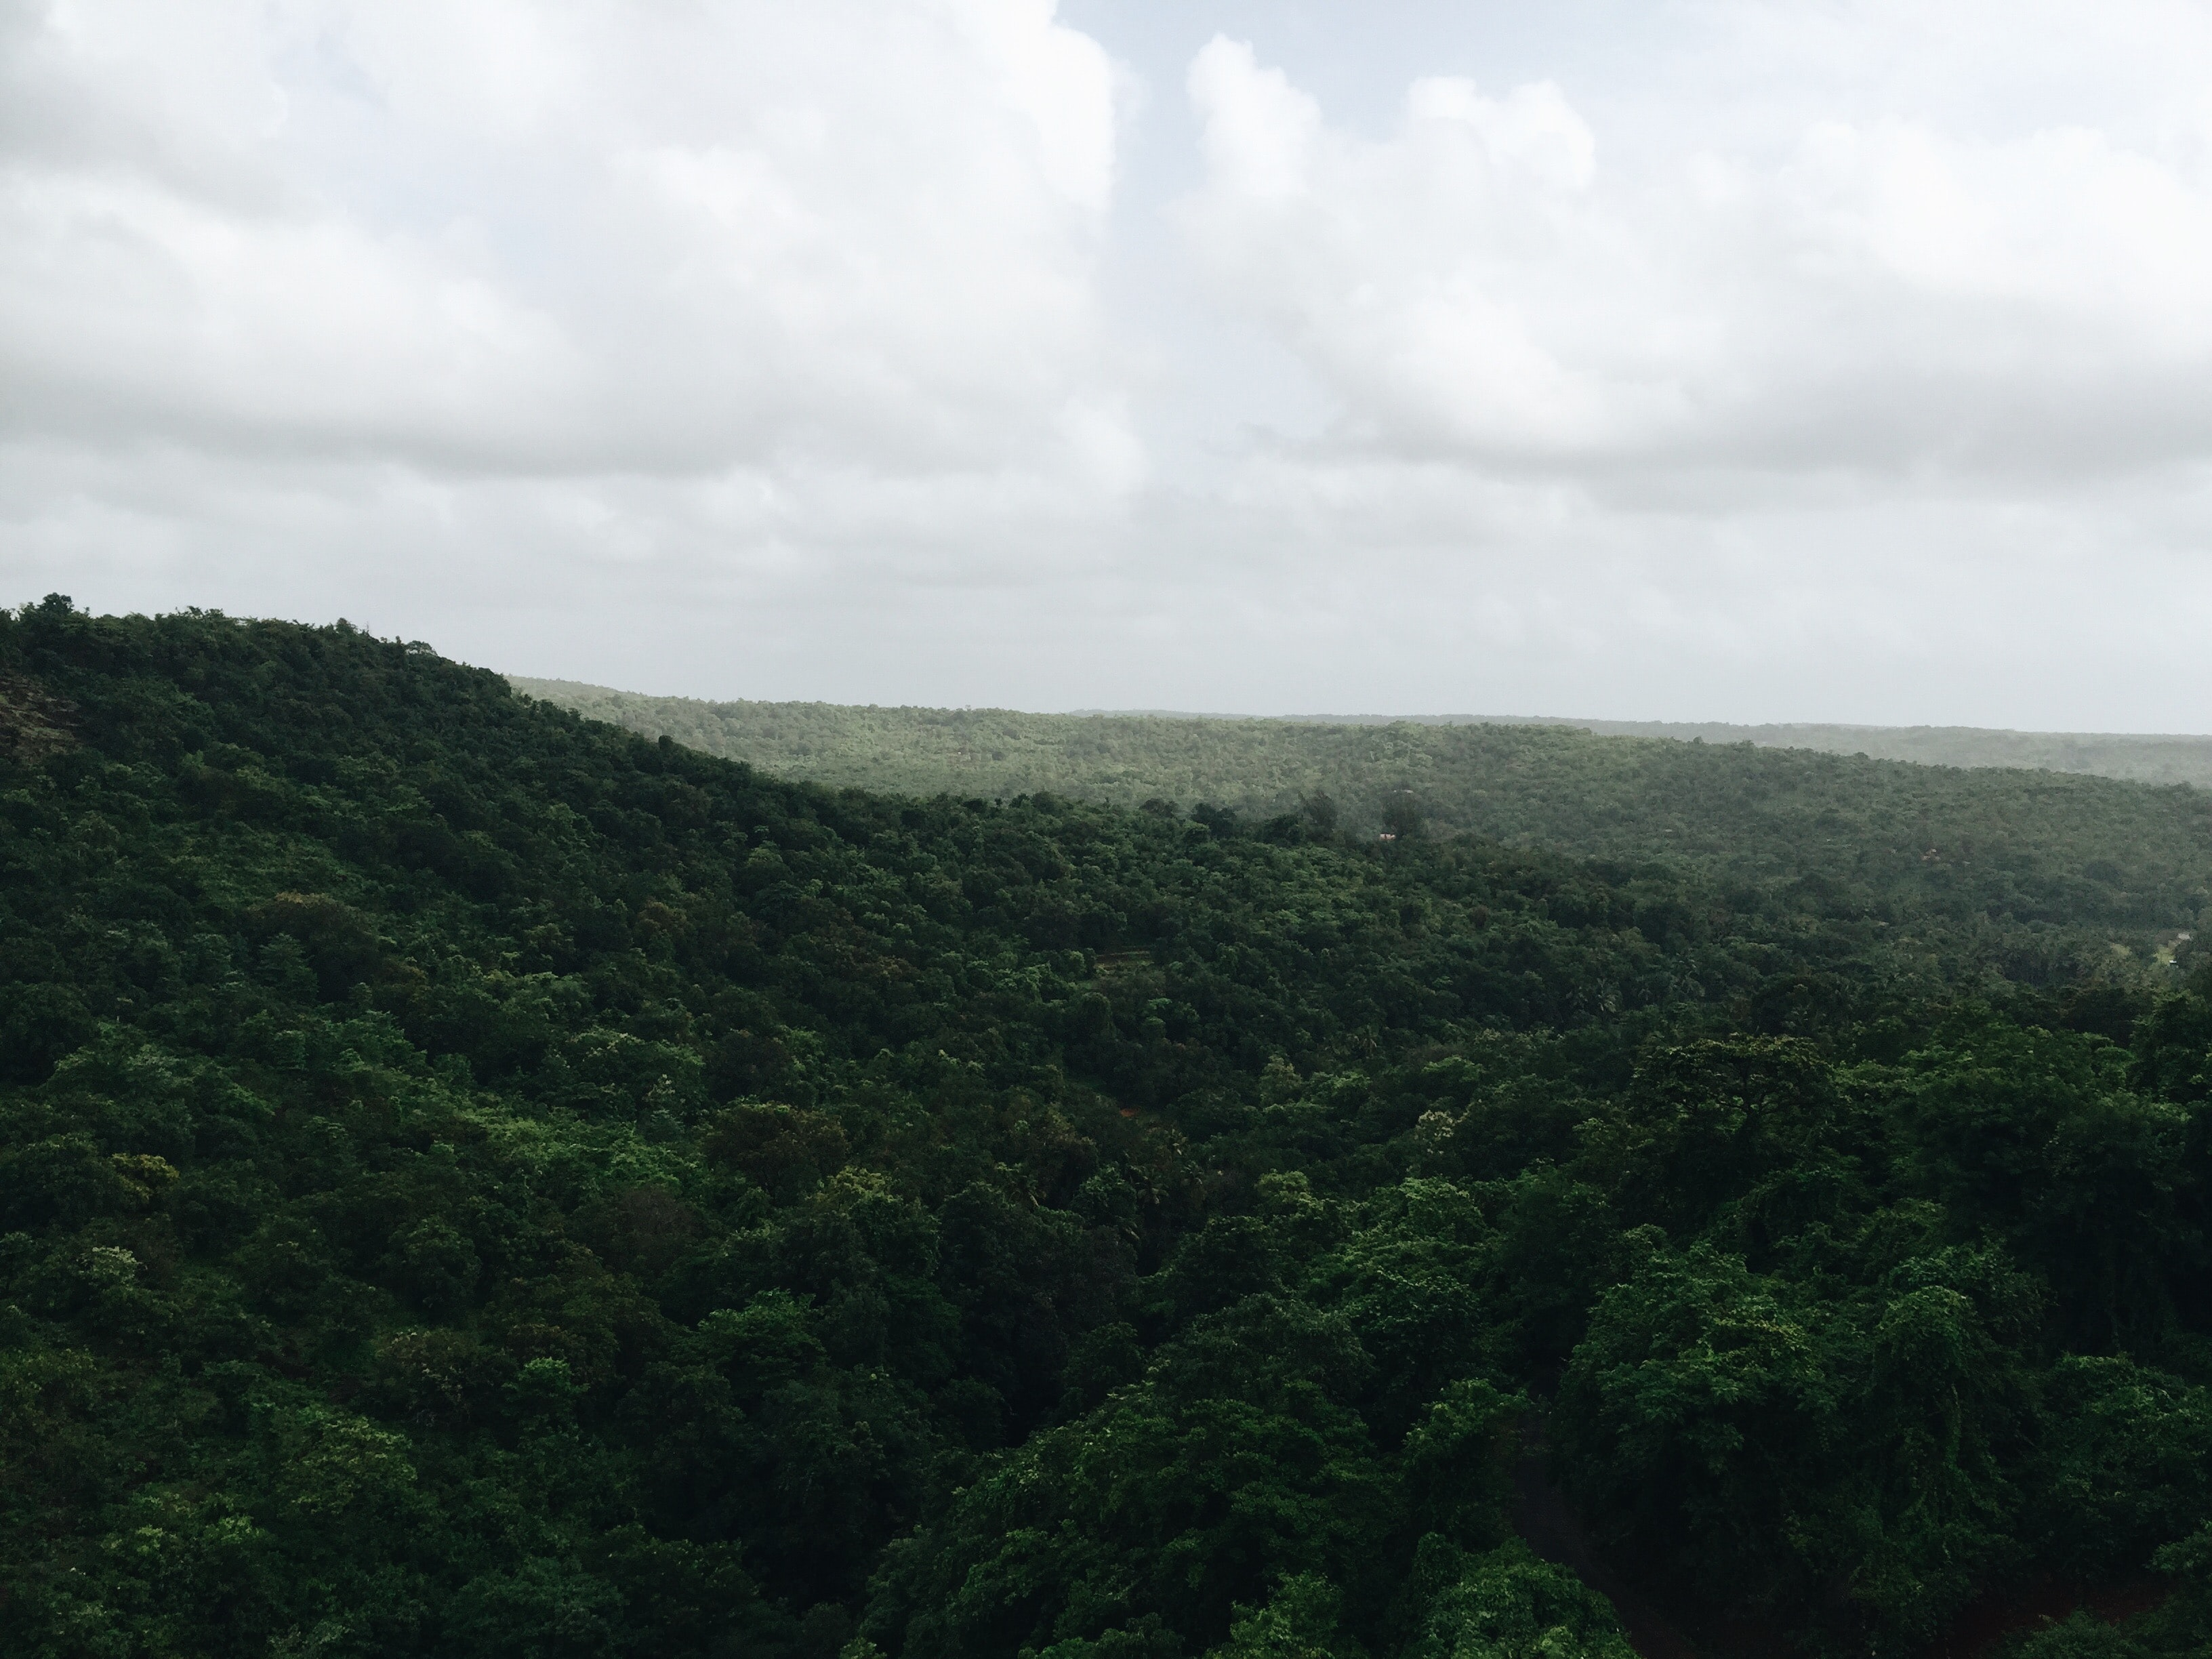 A dark green forest stretching to the horizon in Lonavala, India